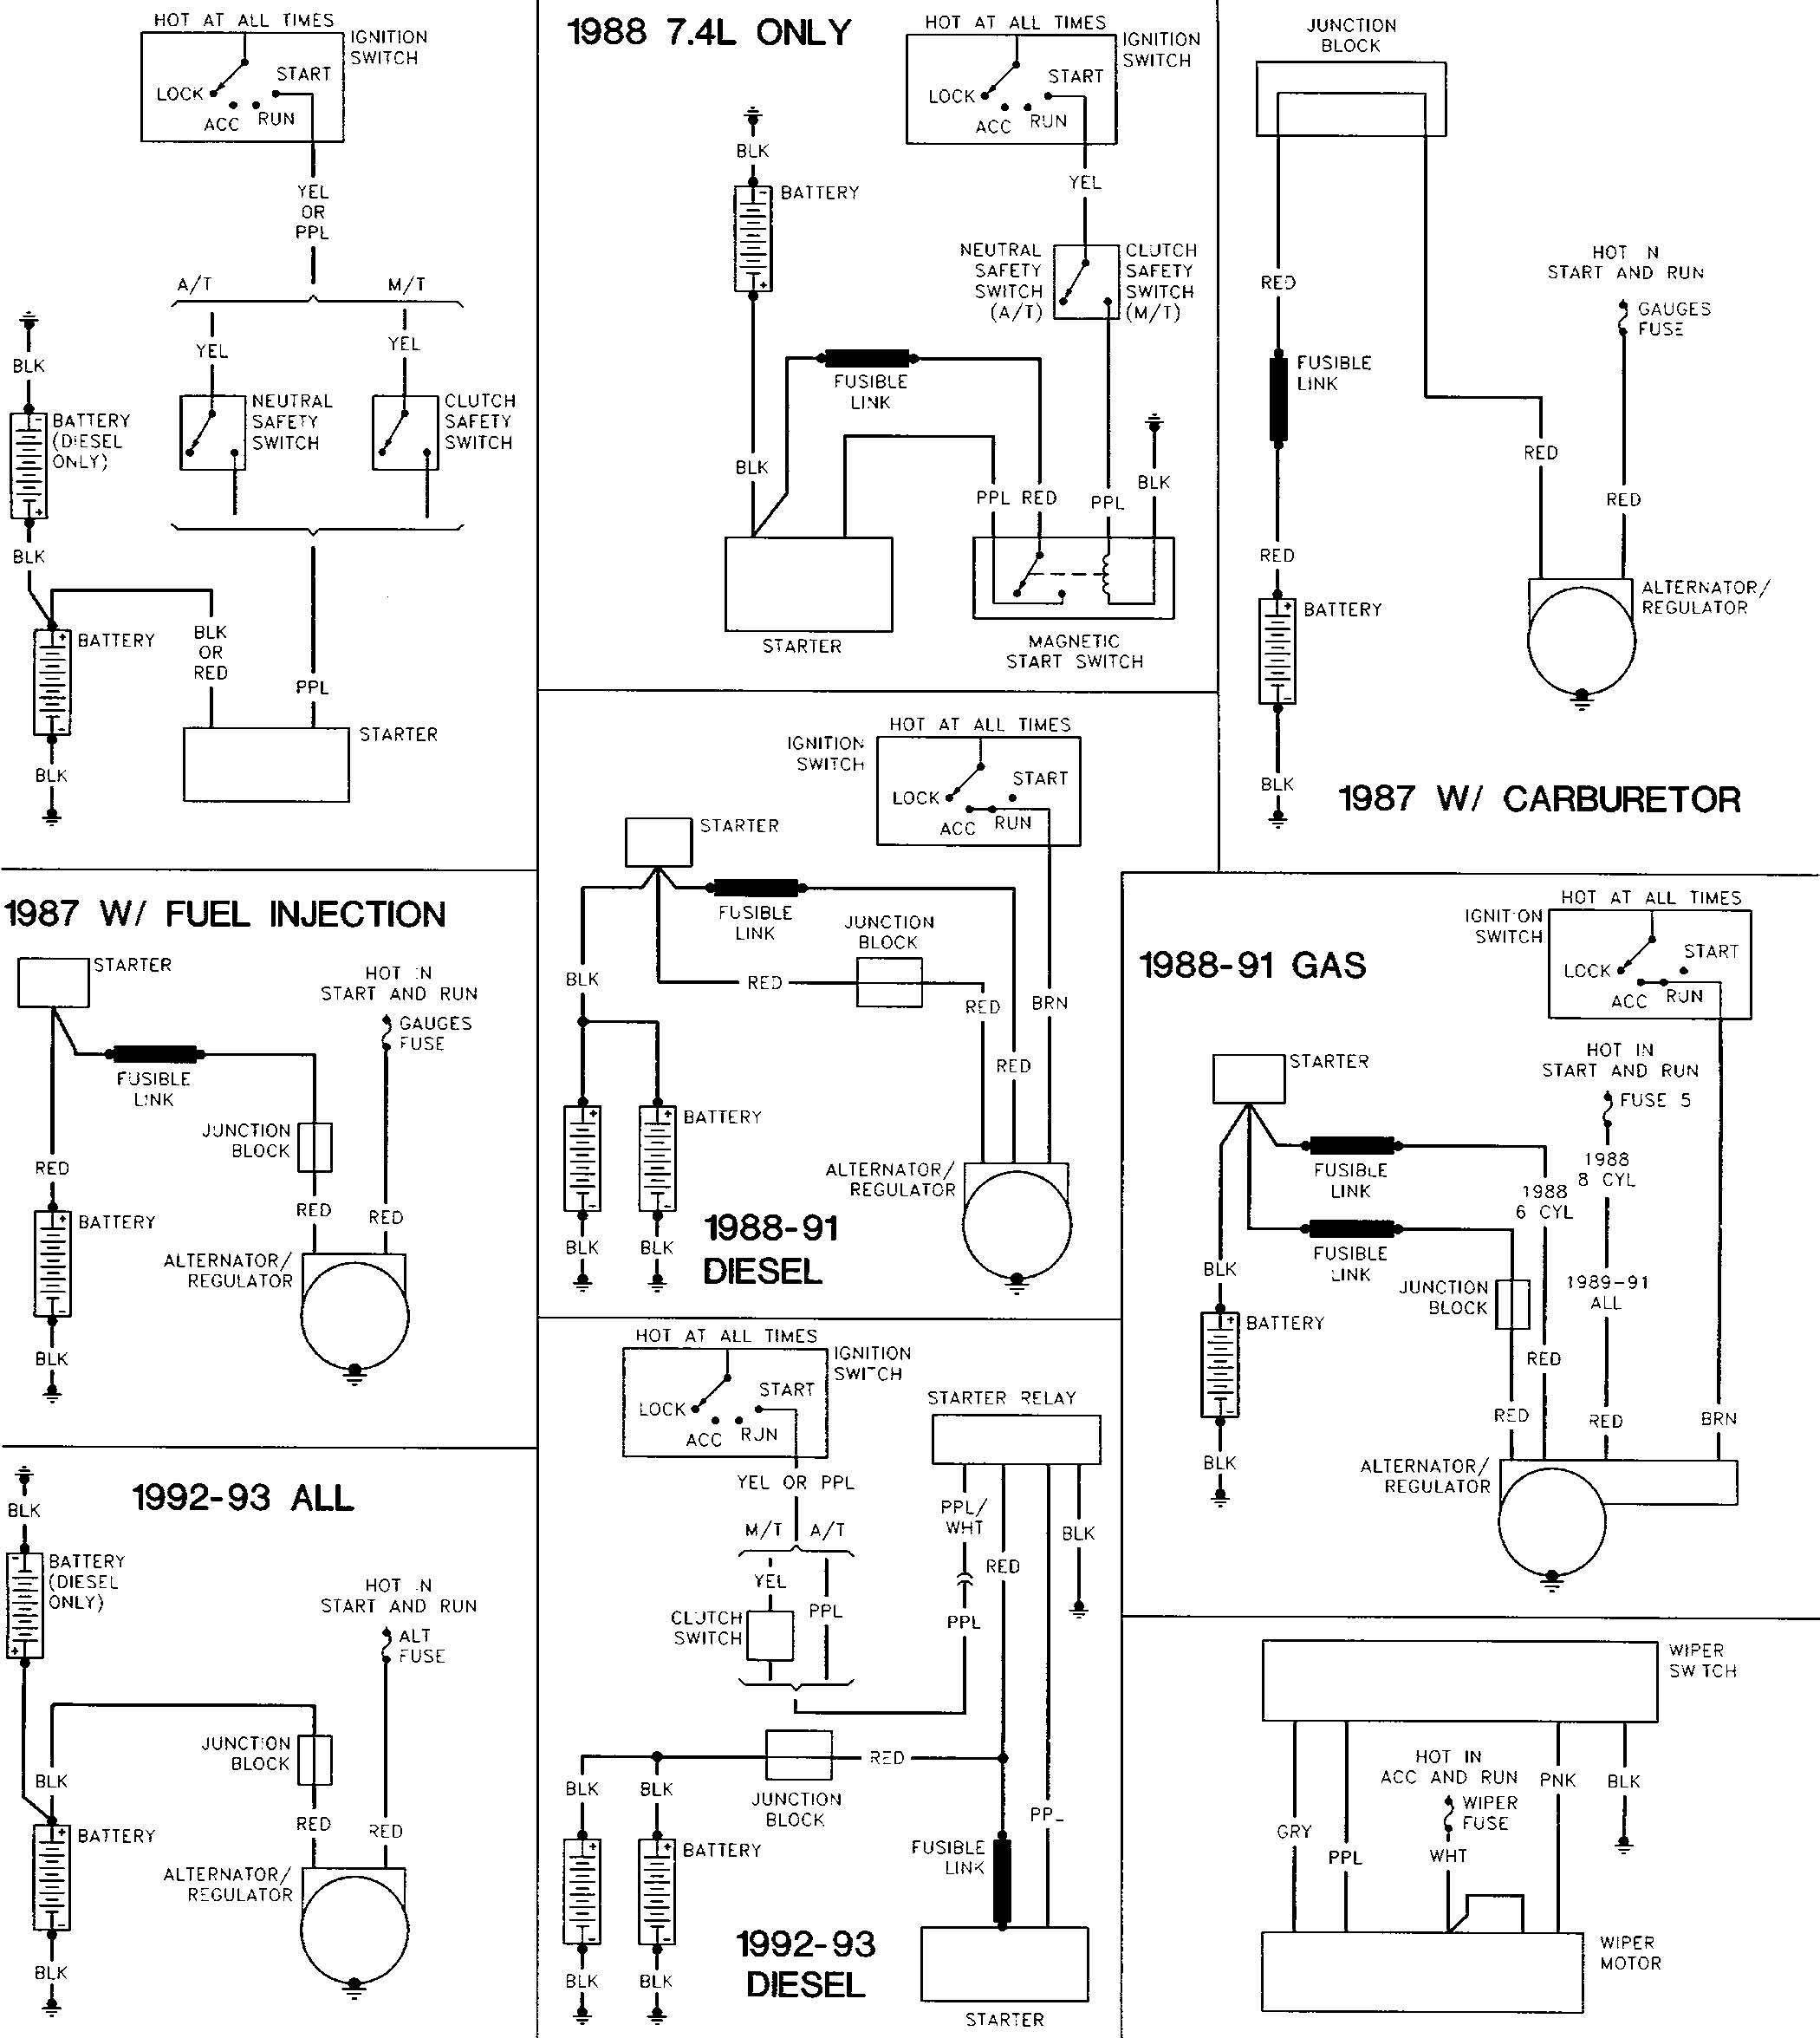 wiring diagrams 2003 fleetwood storm 31a wiring diagram table 2012 Fleetwood Discovery Wiring-Diagram